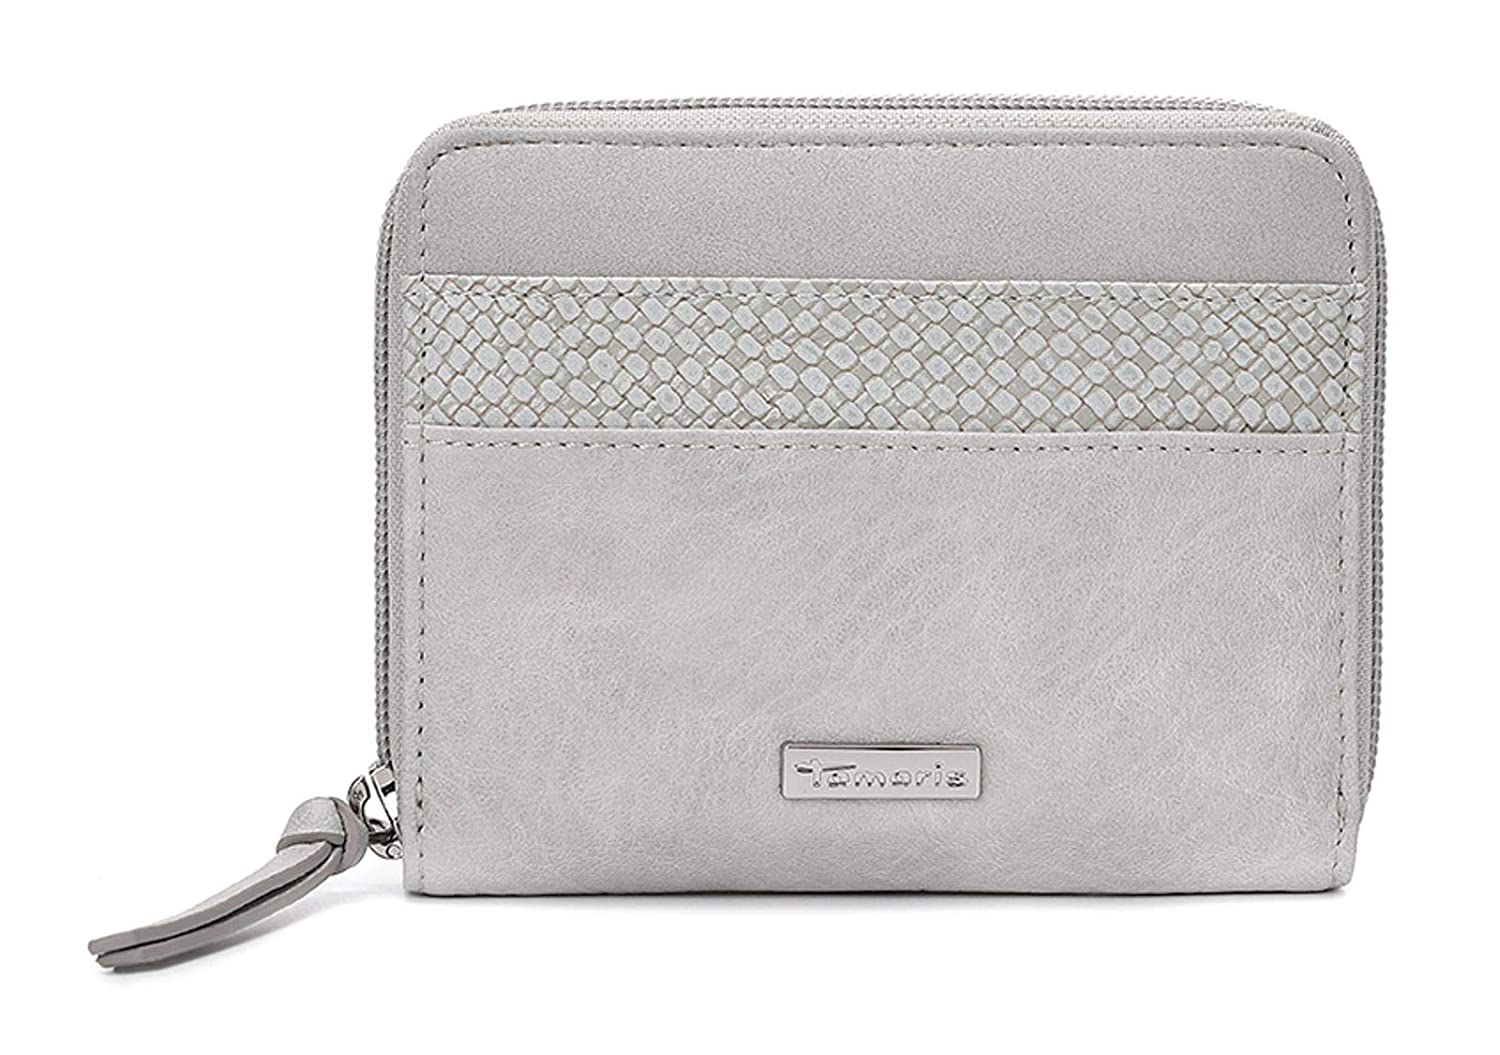 Details zu Tamaris Damen Tasche Khema Shiny Crossbody Bag M light grey comb (grau)